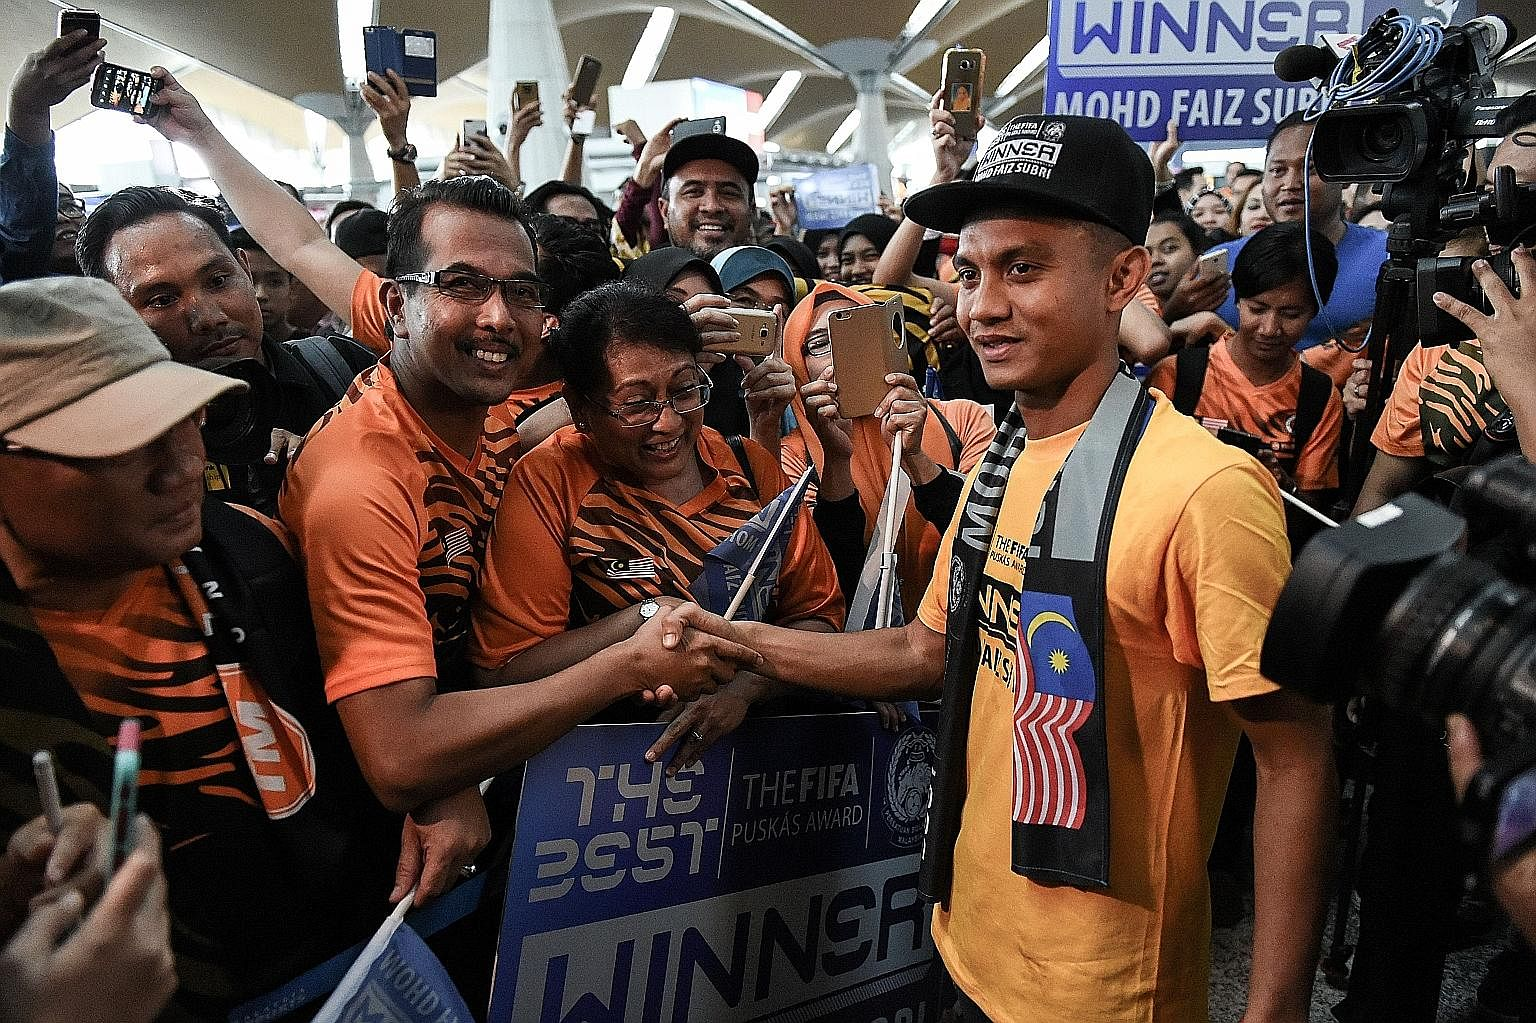 Malaysian footballer Mohd Faiz Subri (right) greeting supporters at the Kuala Lumpur International Airport after winning the Puskas Award The 29-year-old Penang forward has never started for his national team.